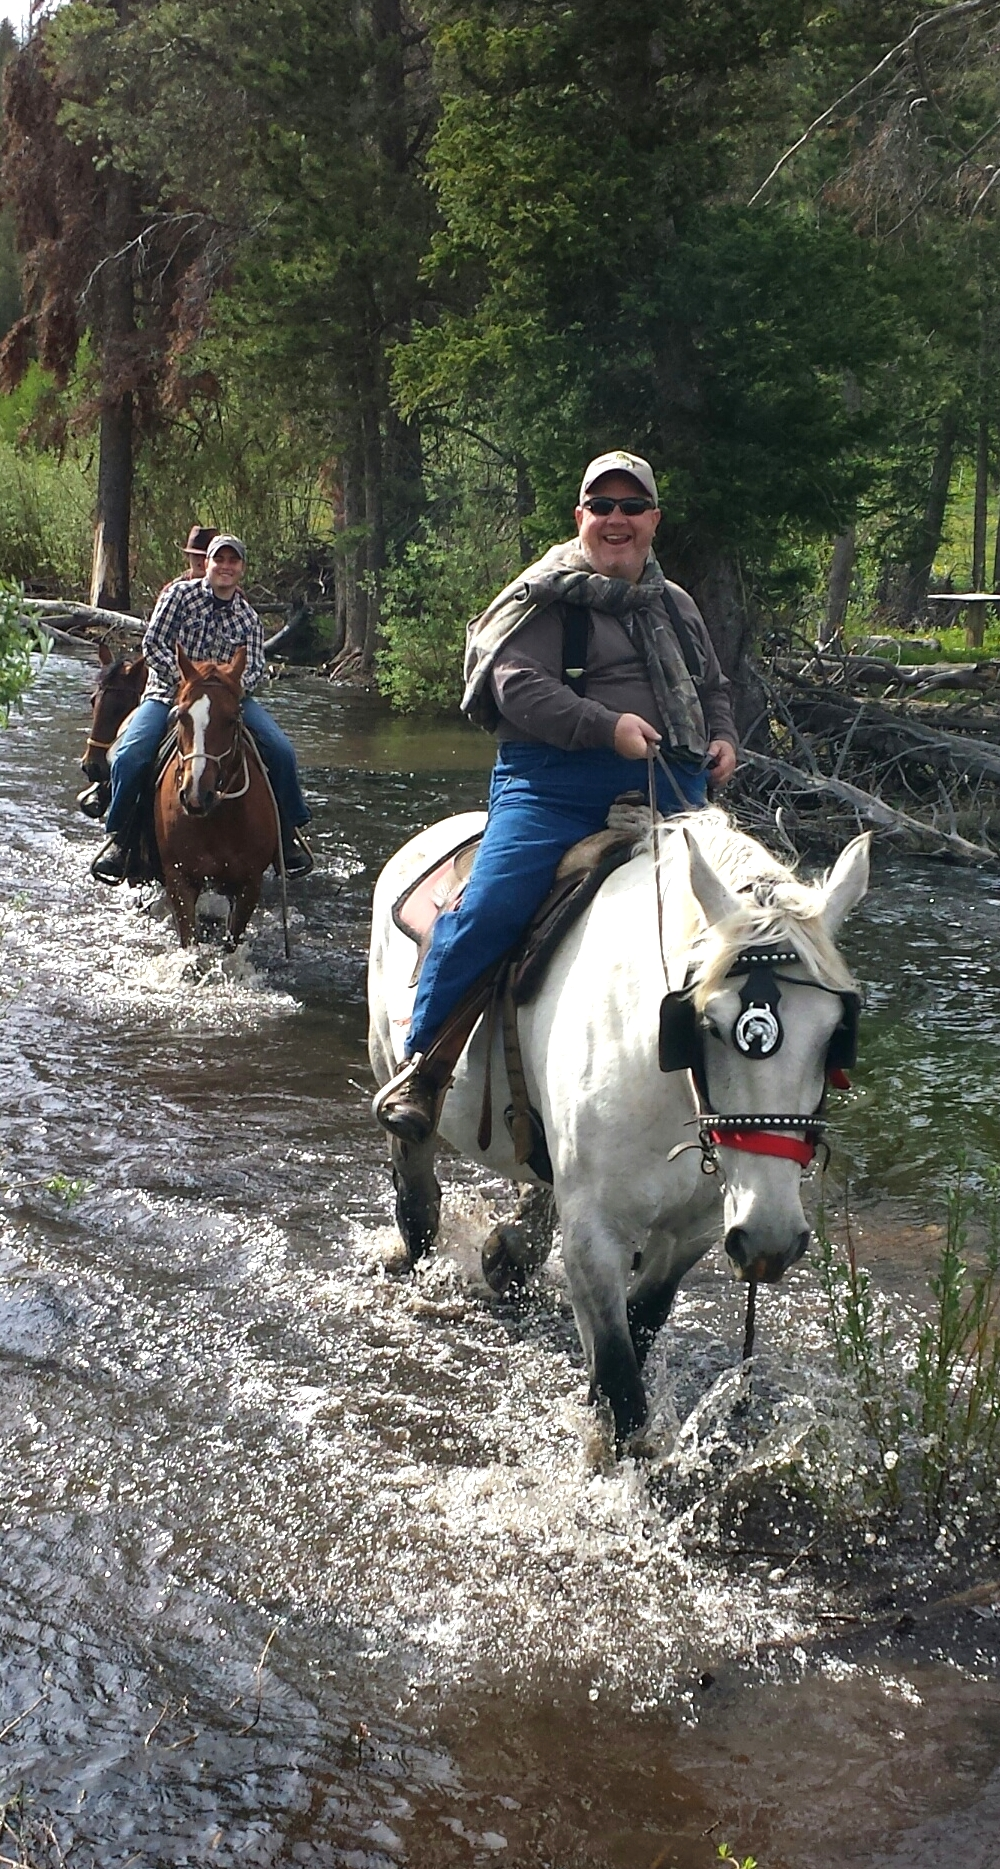 water crossing with horses